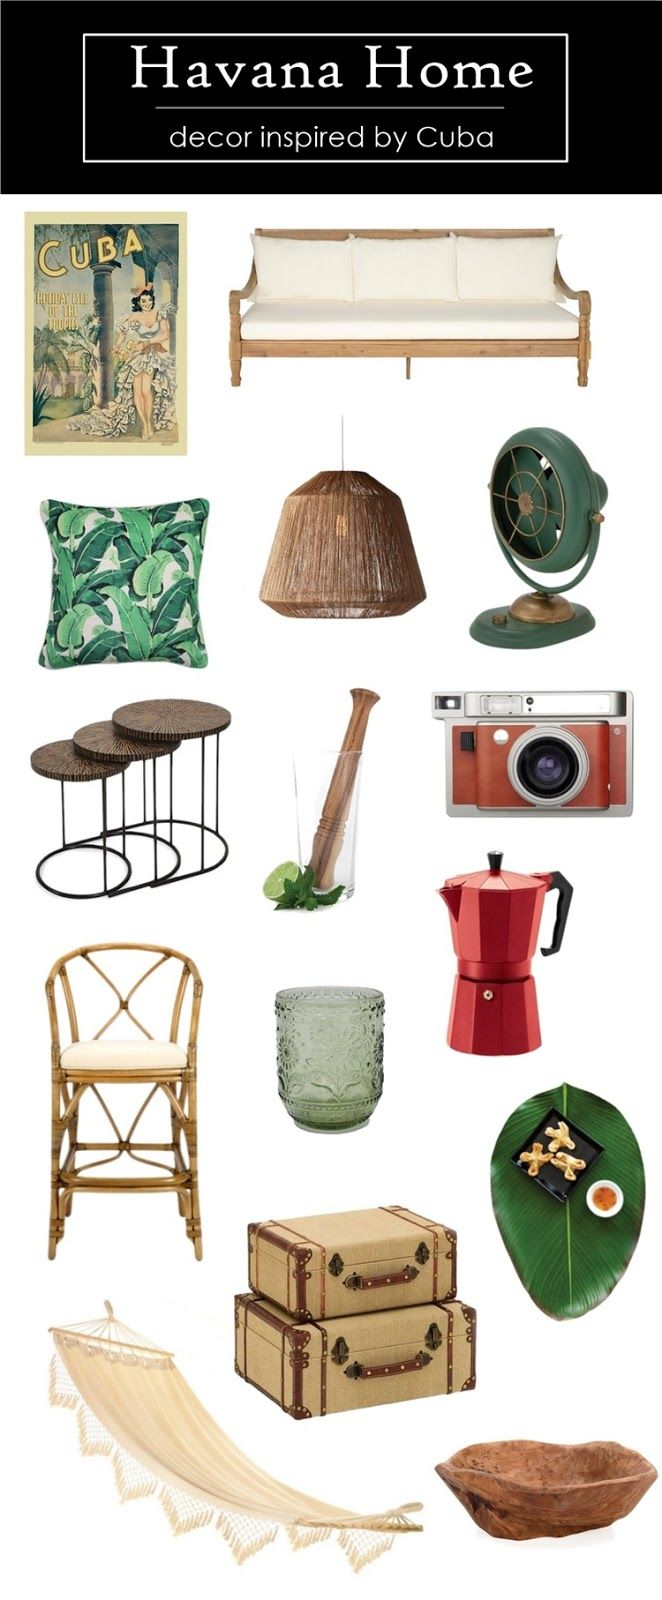 Modern Havana Home Decor Inspired by Cuba Cuban decor